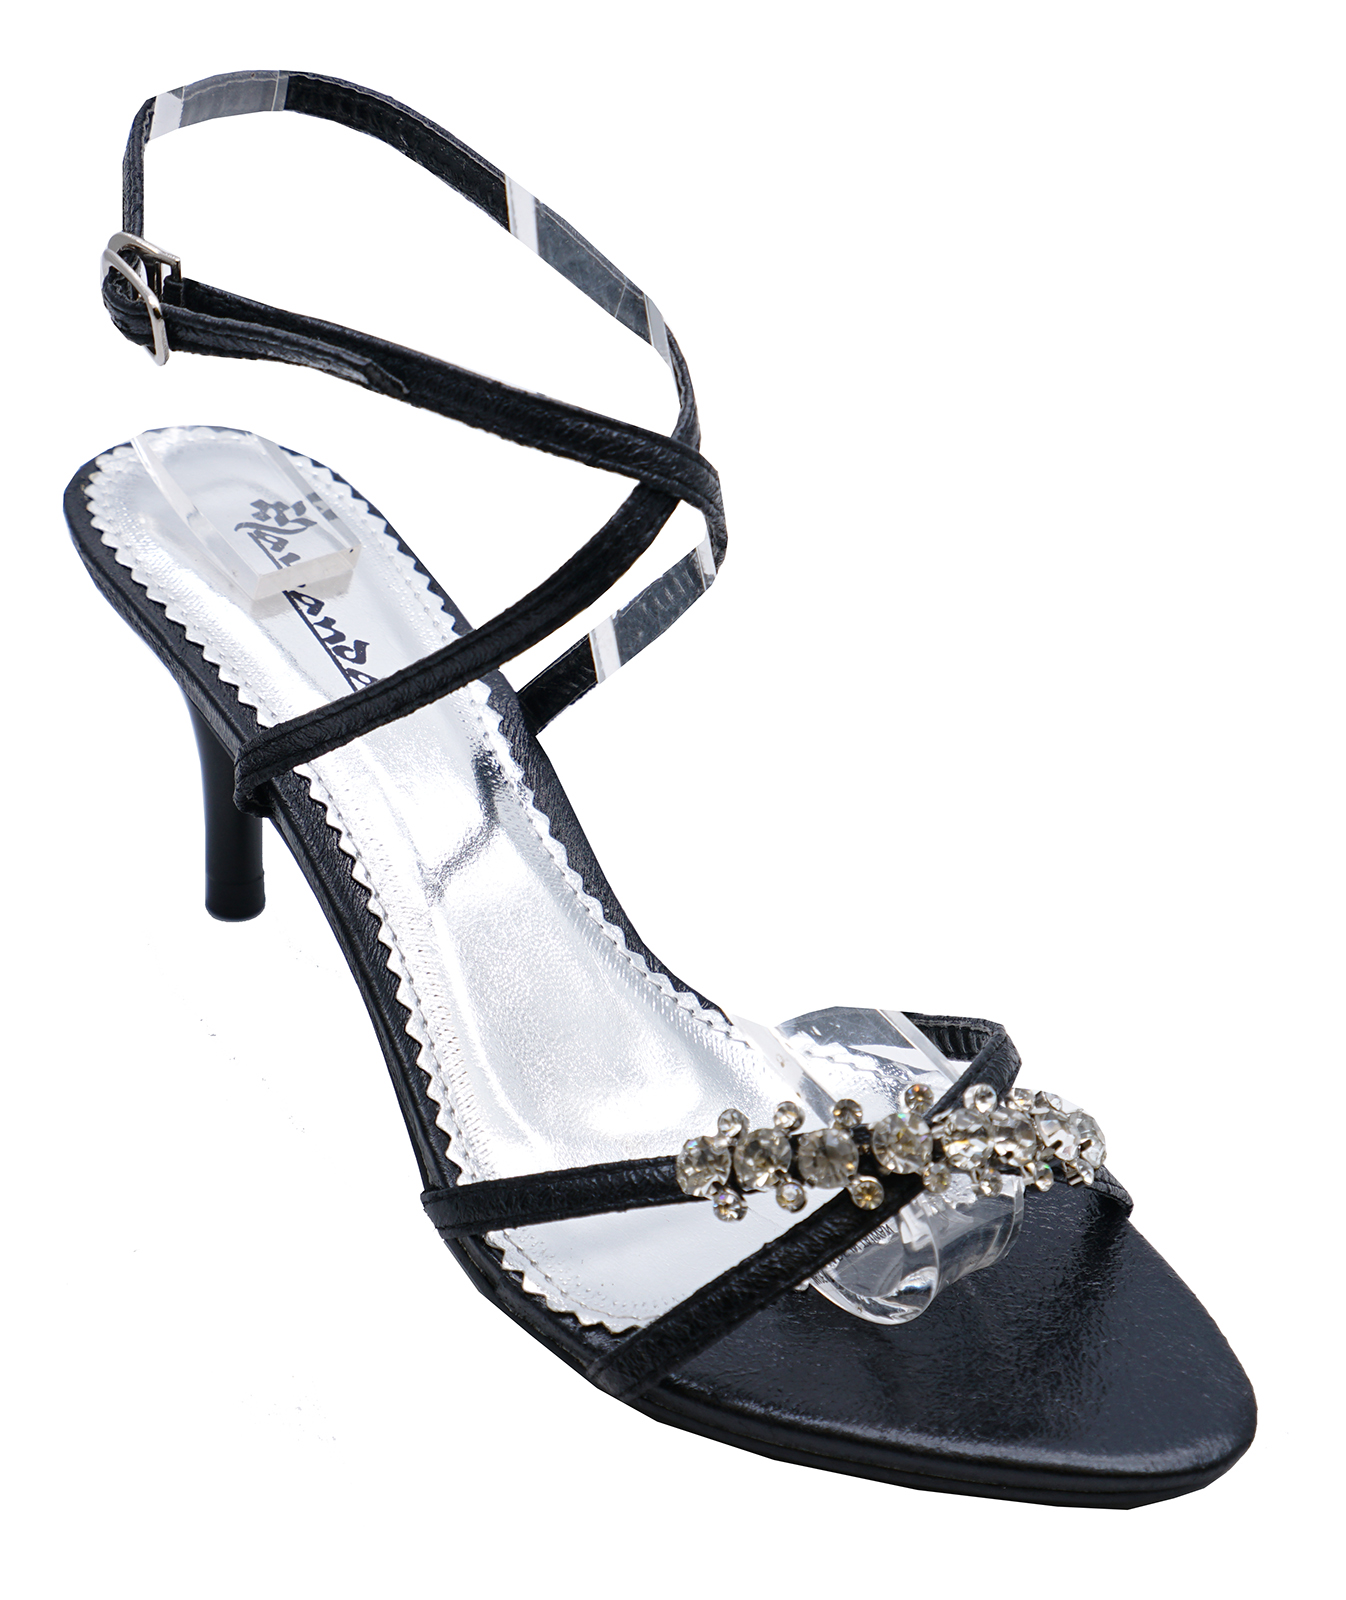 85d09f2b20f9 Details about WOMENS BLACK WEDDING STRAPPY PROM BRIDESMAID DIAMANTE SANDALS  SHOES SIZES 3-8